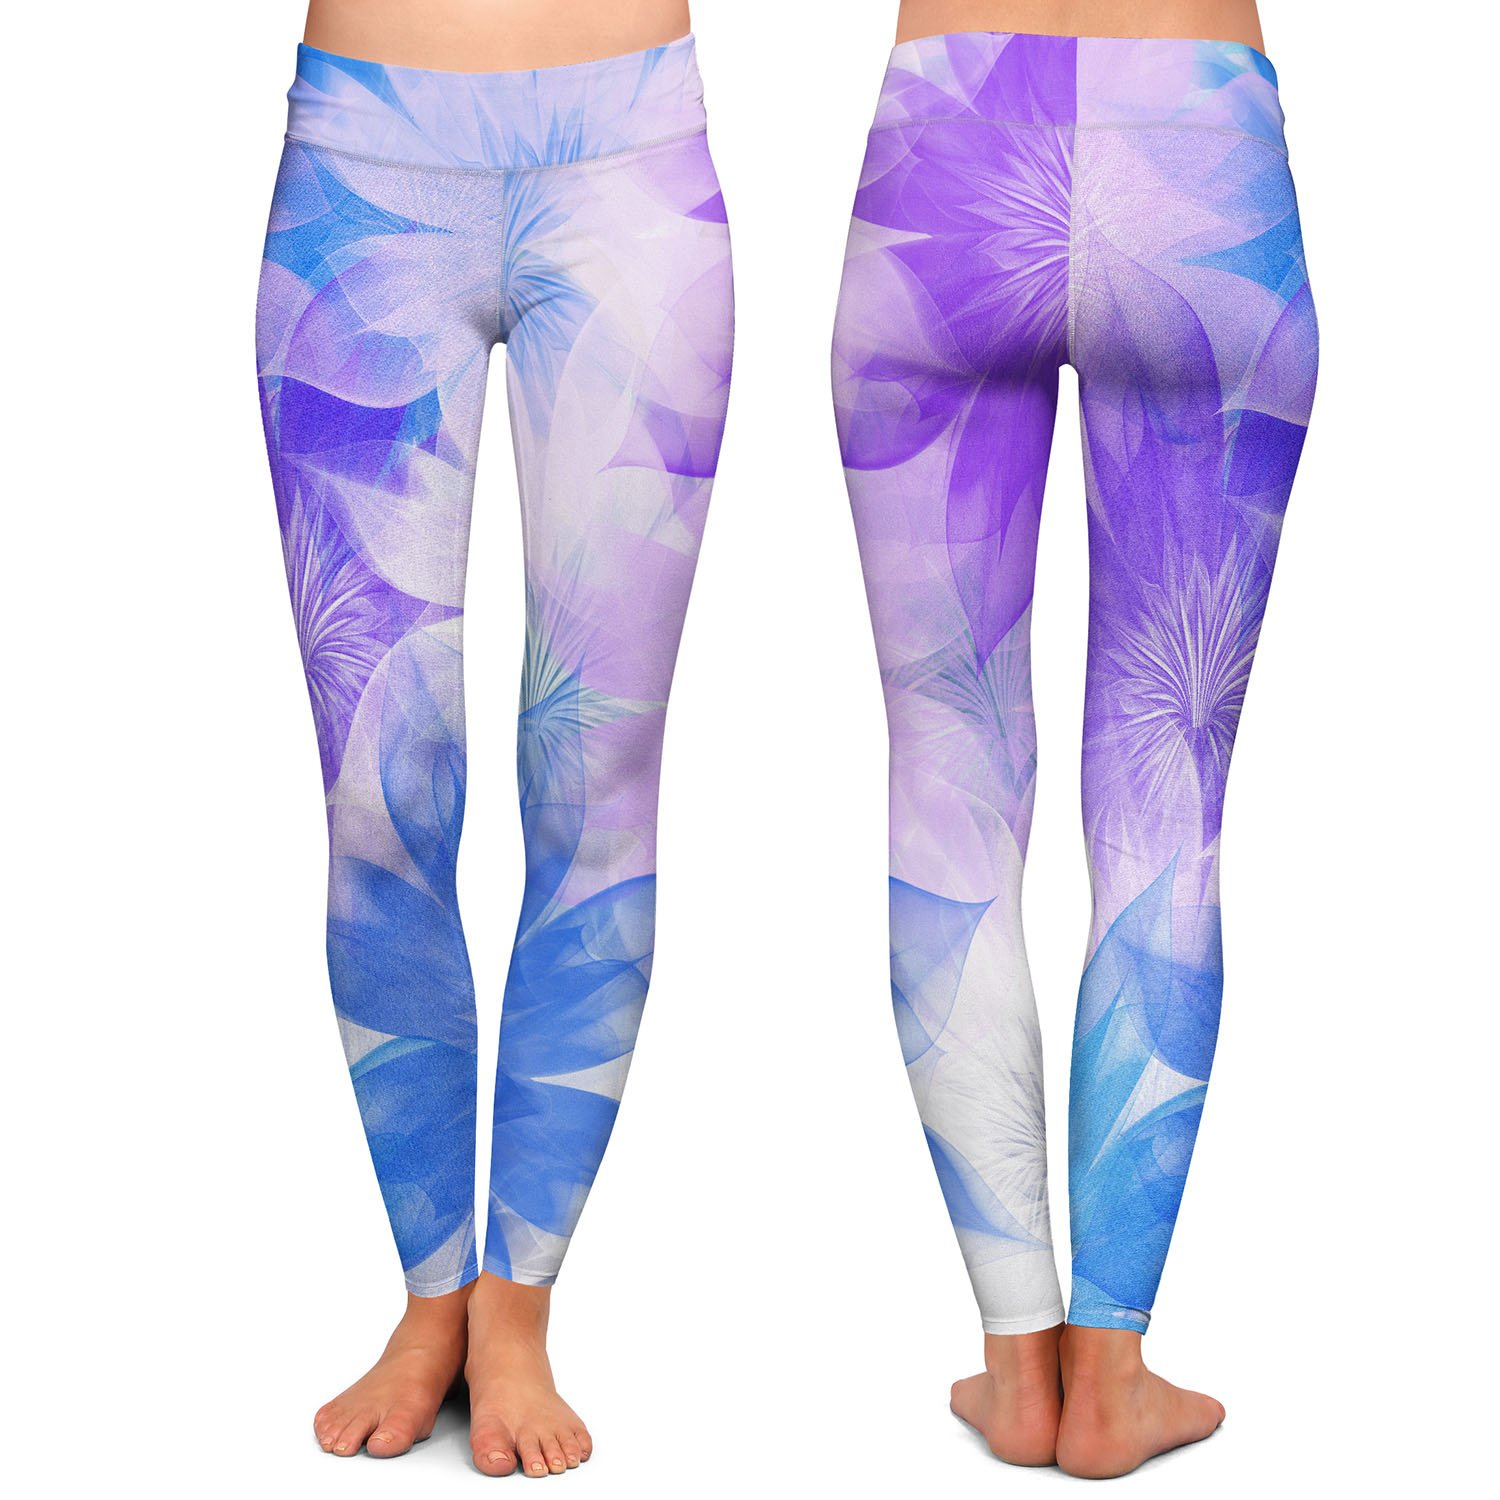 Flower Bunch Purples Athletic Yoga Leggings from DiaNoche Designs by Pam Amos